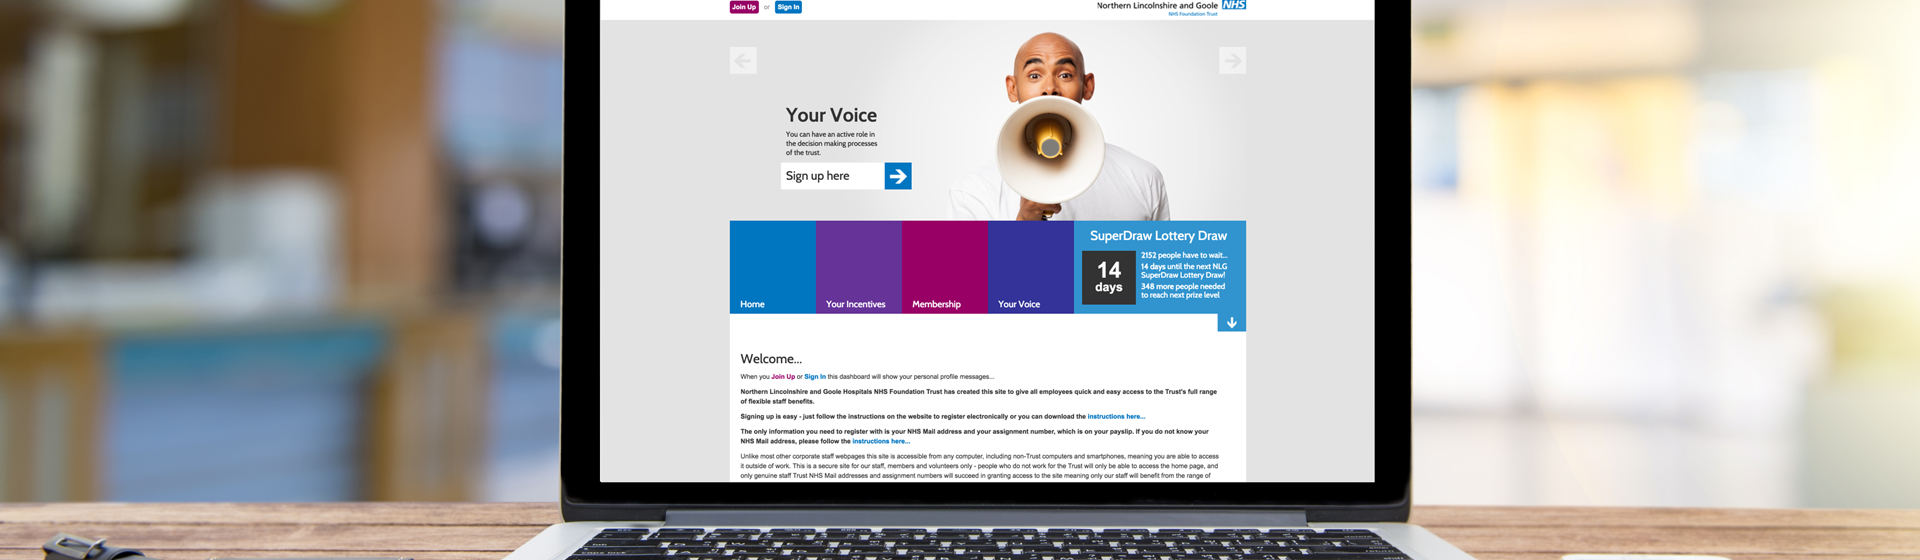 Northern Lincolnshire and Goole Hospitals Staff Portal Homepage